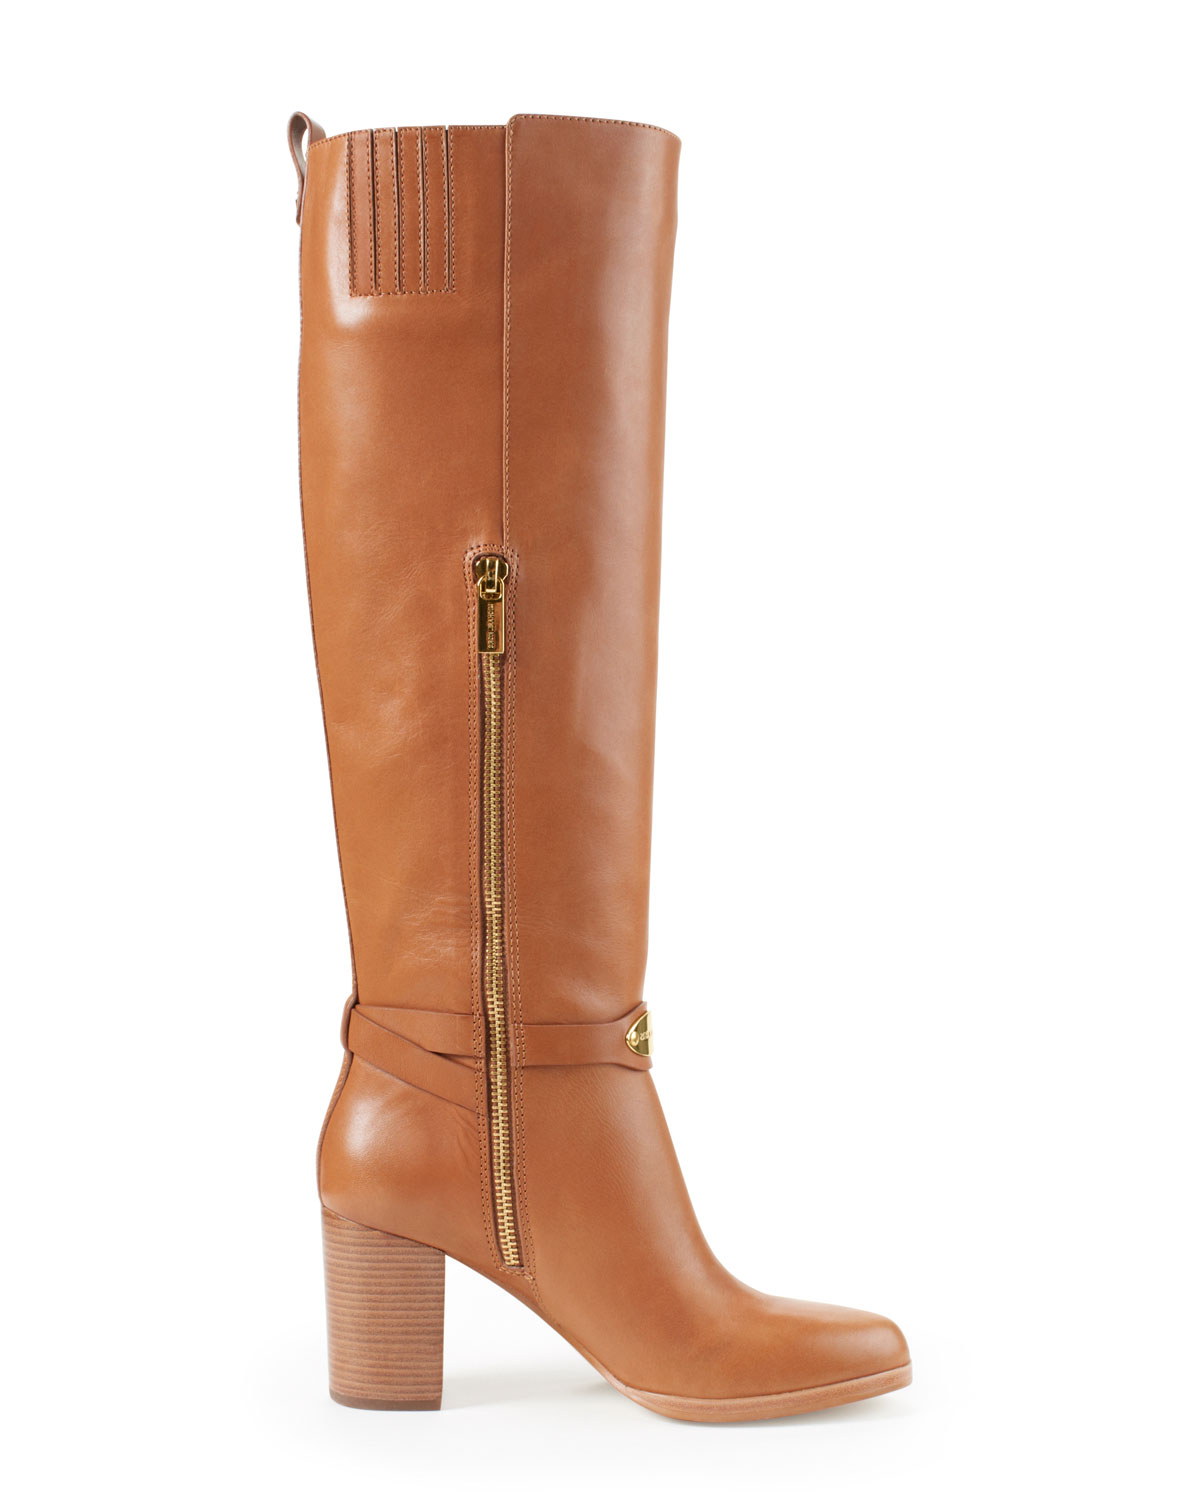 4e94d2c2161 Gallery. Previously sold at  Neiman Marcus · Women s Riding Boots Women s Michael  Kors Arley ...